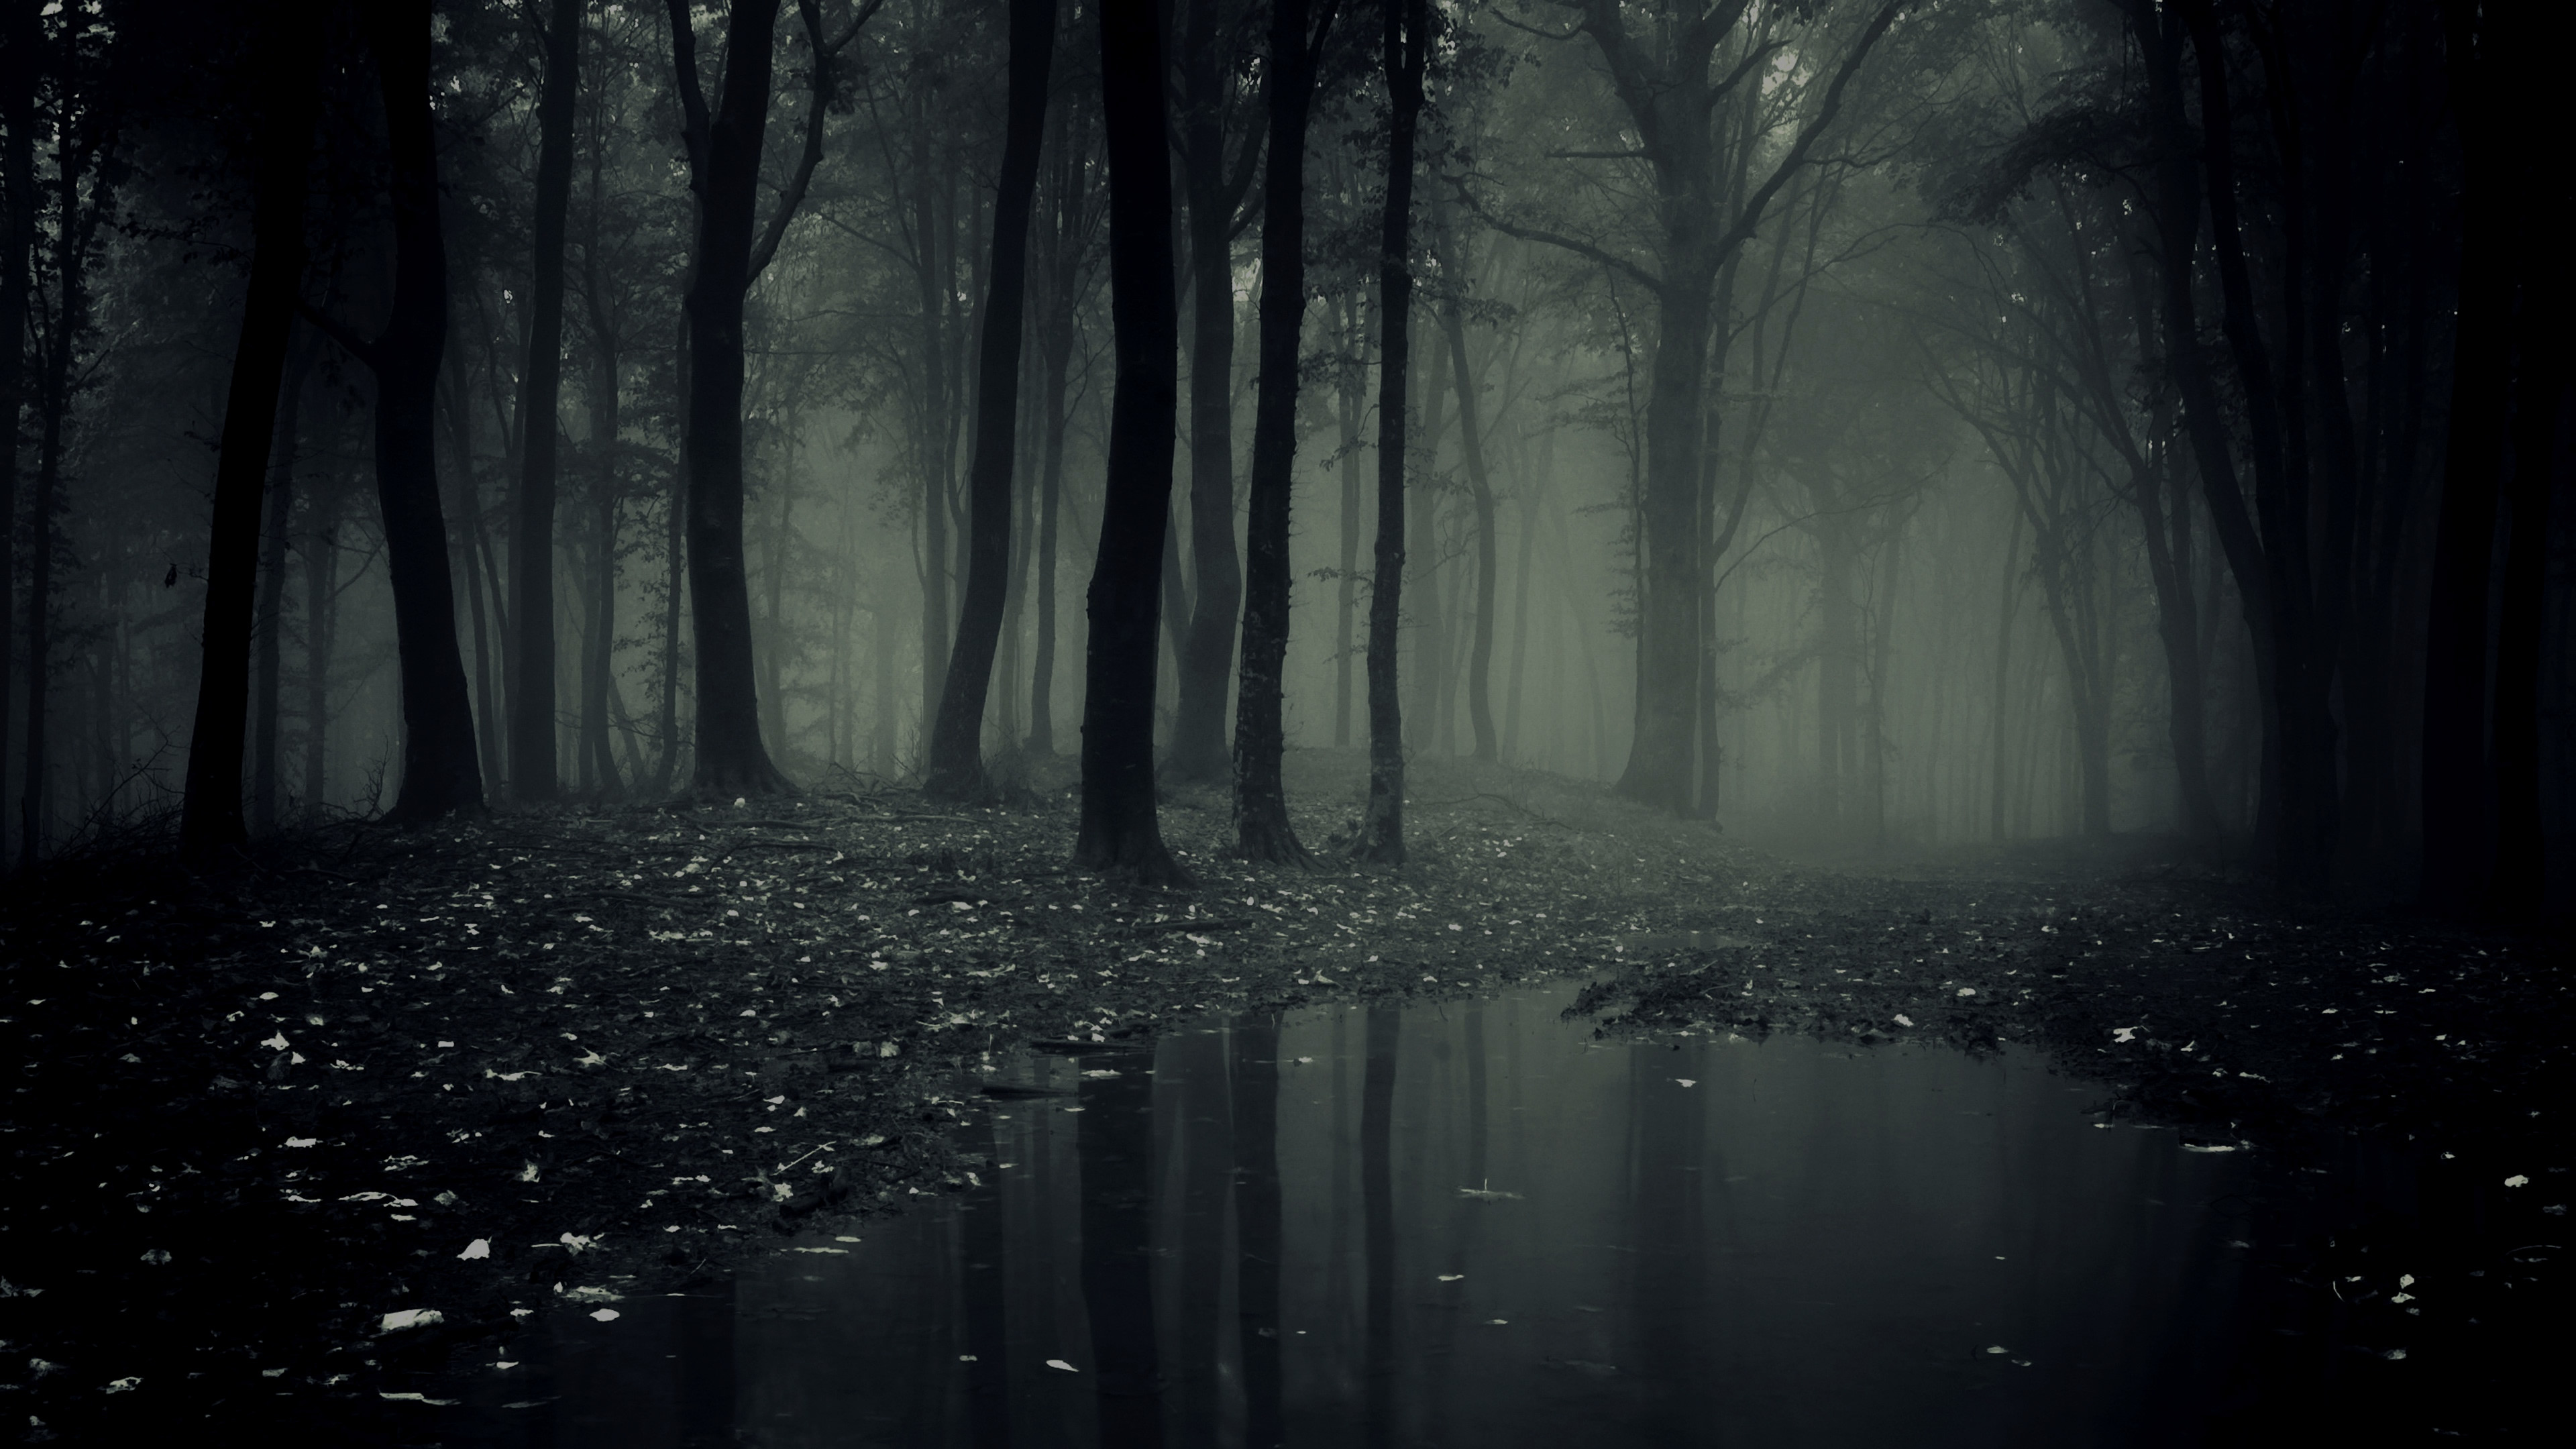 3840x2160 https://alcanfordelasinfantas.files.wordpress.com/2015/10/scary-dark-forest-desktop.jpg  | referencias juego | Pinterest | Dark forest and Landscaping